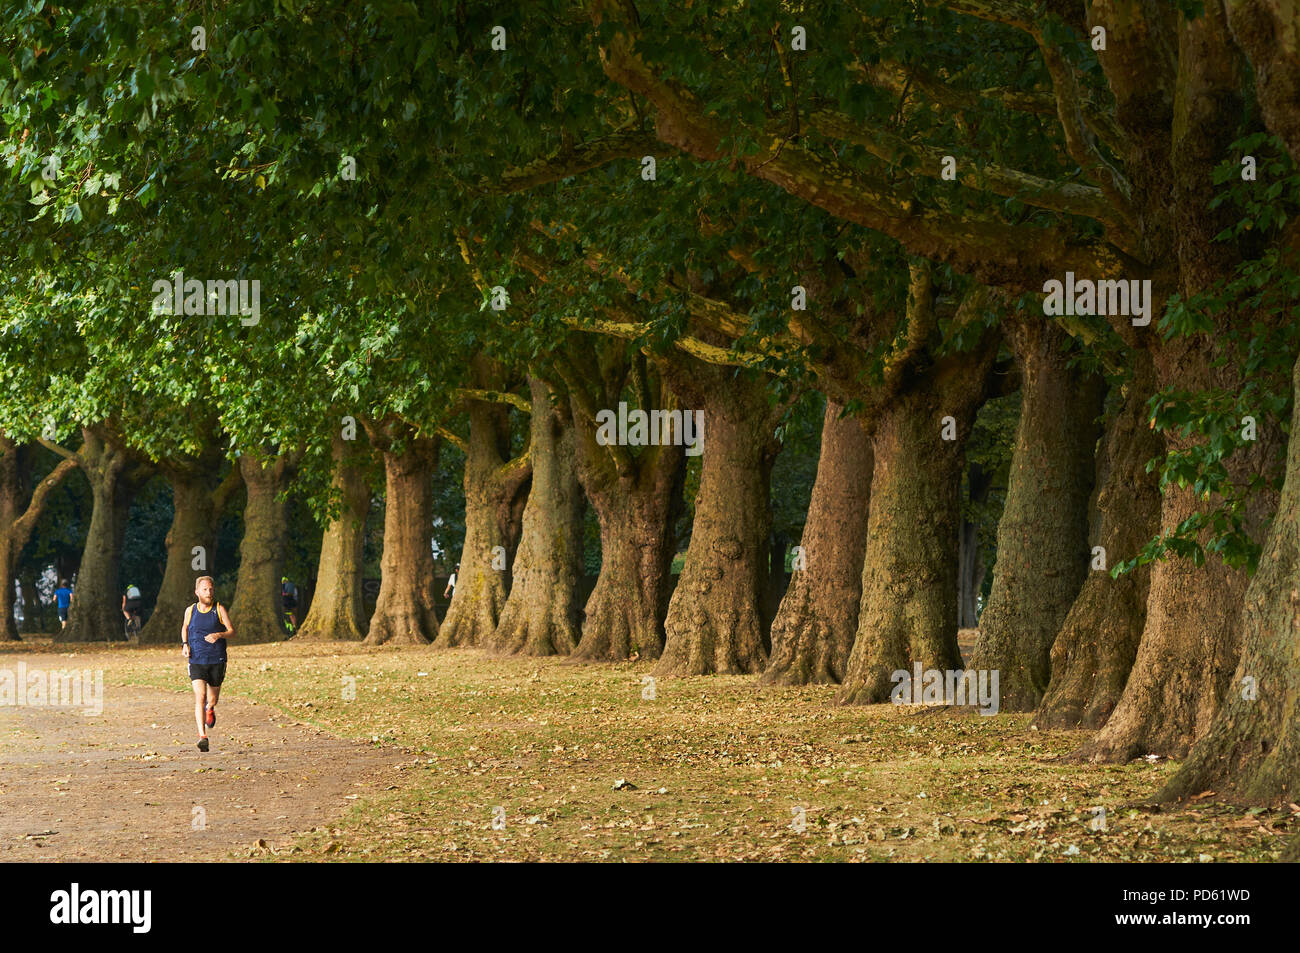 Jogger and row of trees in Victoria Park, East London UK, during the 2018 heatwave, in early August - Stock Image